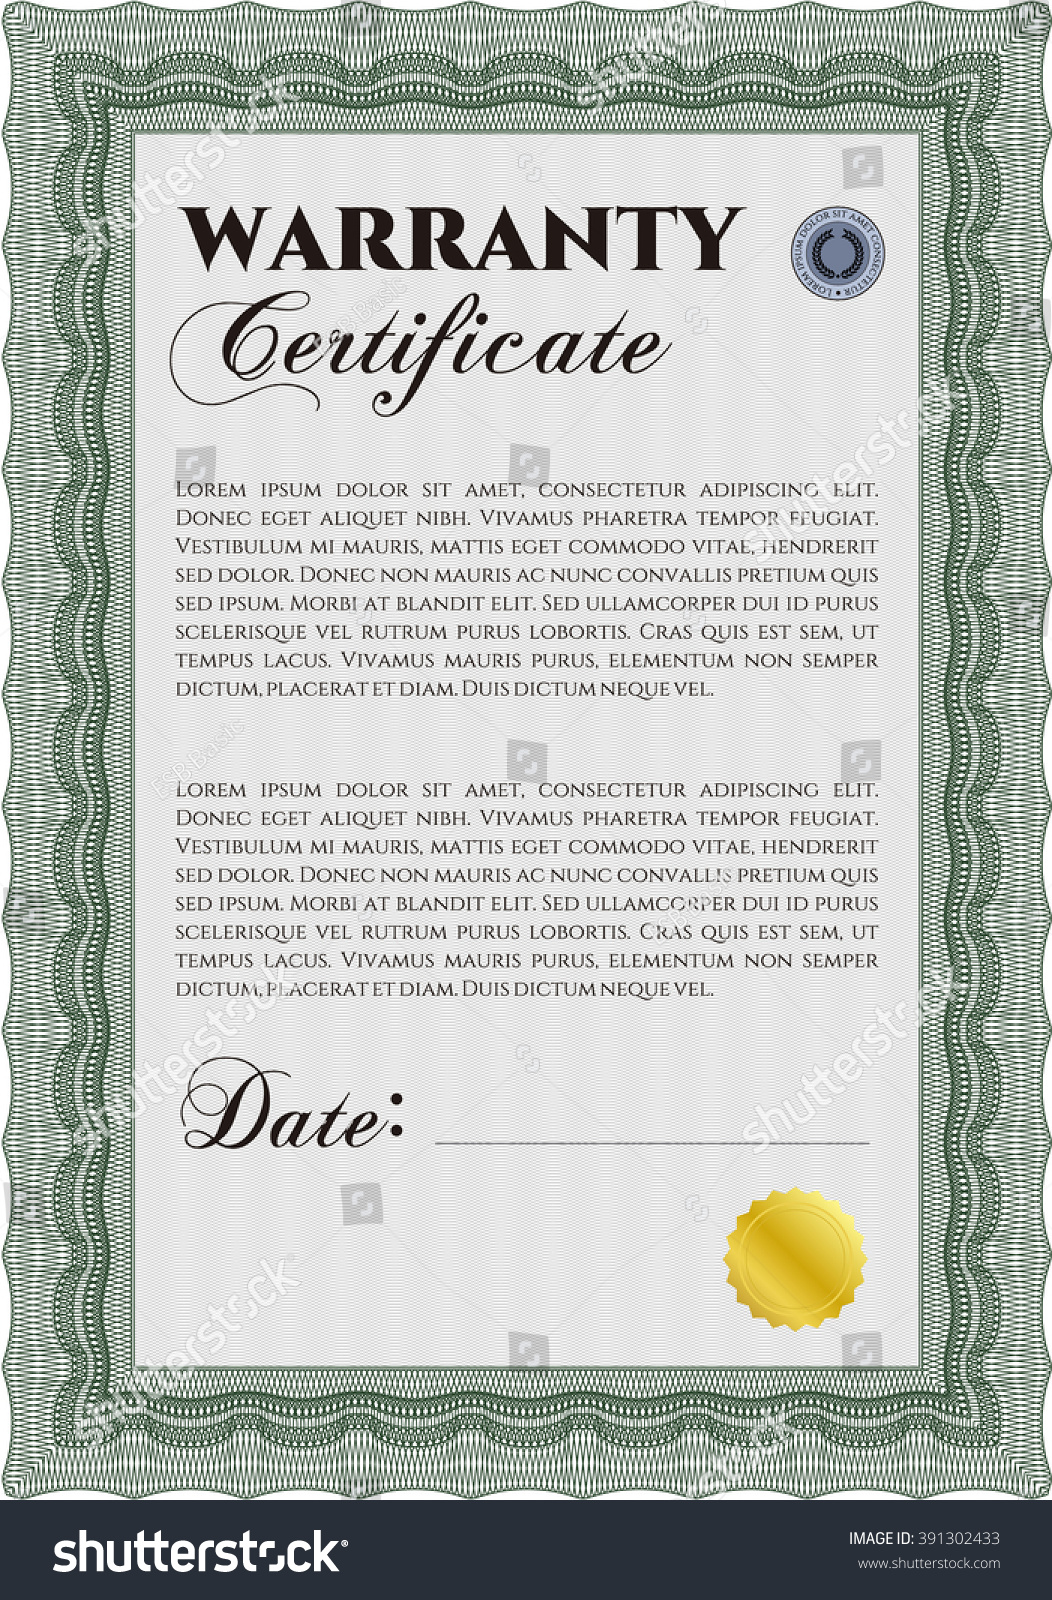 Warranty certificate template image collections templates sample warranty certificate template elegant design stock vector sample warranty certificate template elegant design with guilloche xflitez Image collections